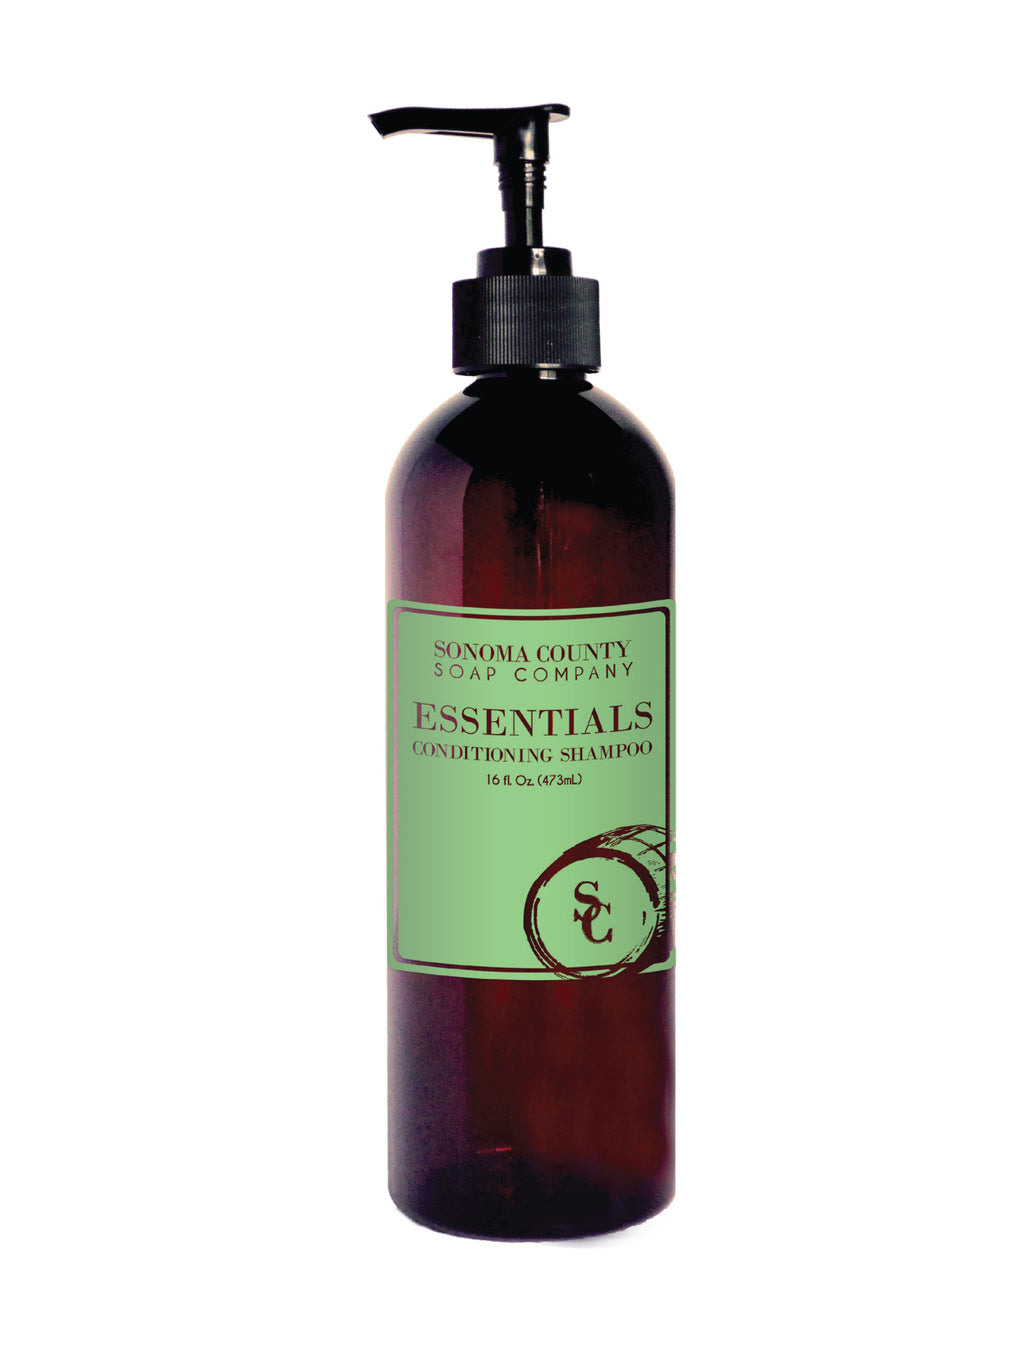 Essentials Conditioning Shampoo - 16 oz.